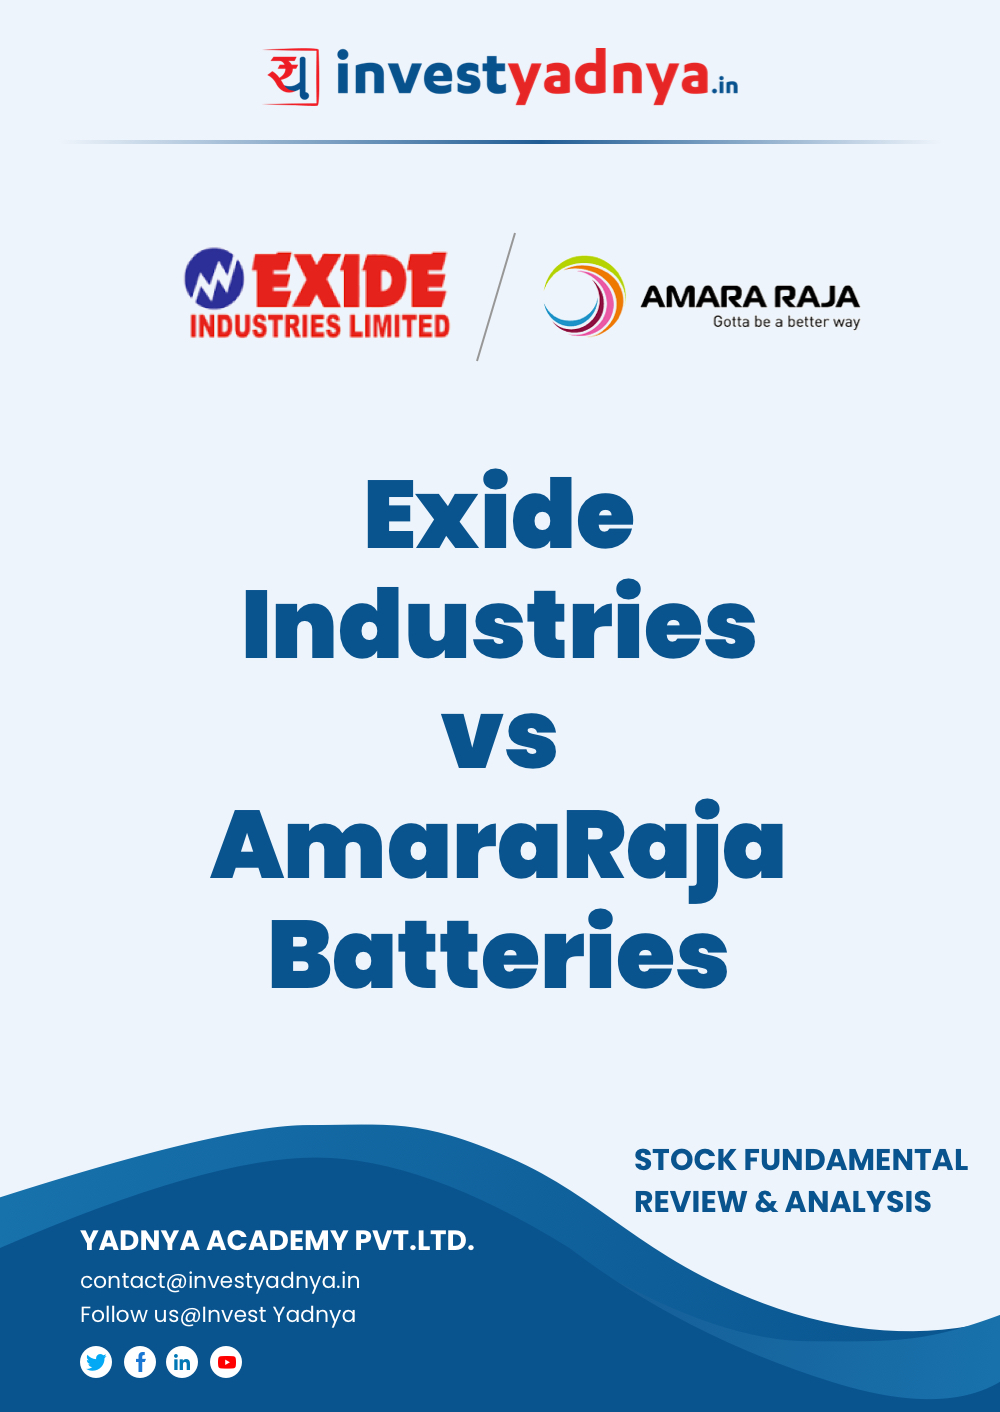 Study this e-book and get a comprehensive review about the Exide Industries Vs Amara Raja Batteries. It gives a detailed review about the Exide industries company profile, competitors, value research, etc. ✓ Free Books Download Pdf ✓ Investment Advice Online ✓ Online Financial Advice Tools